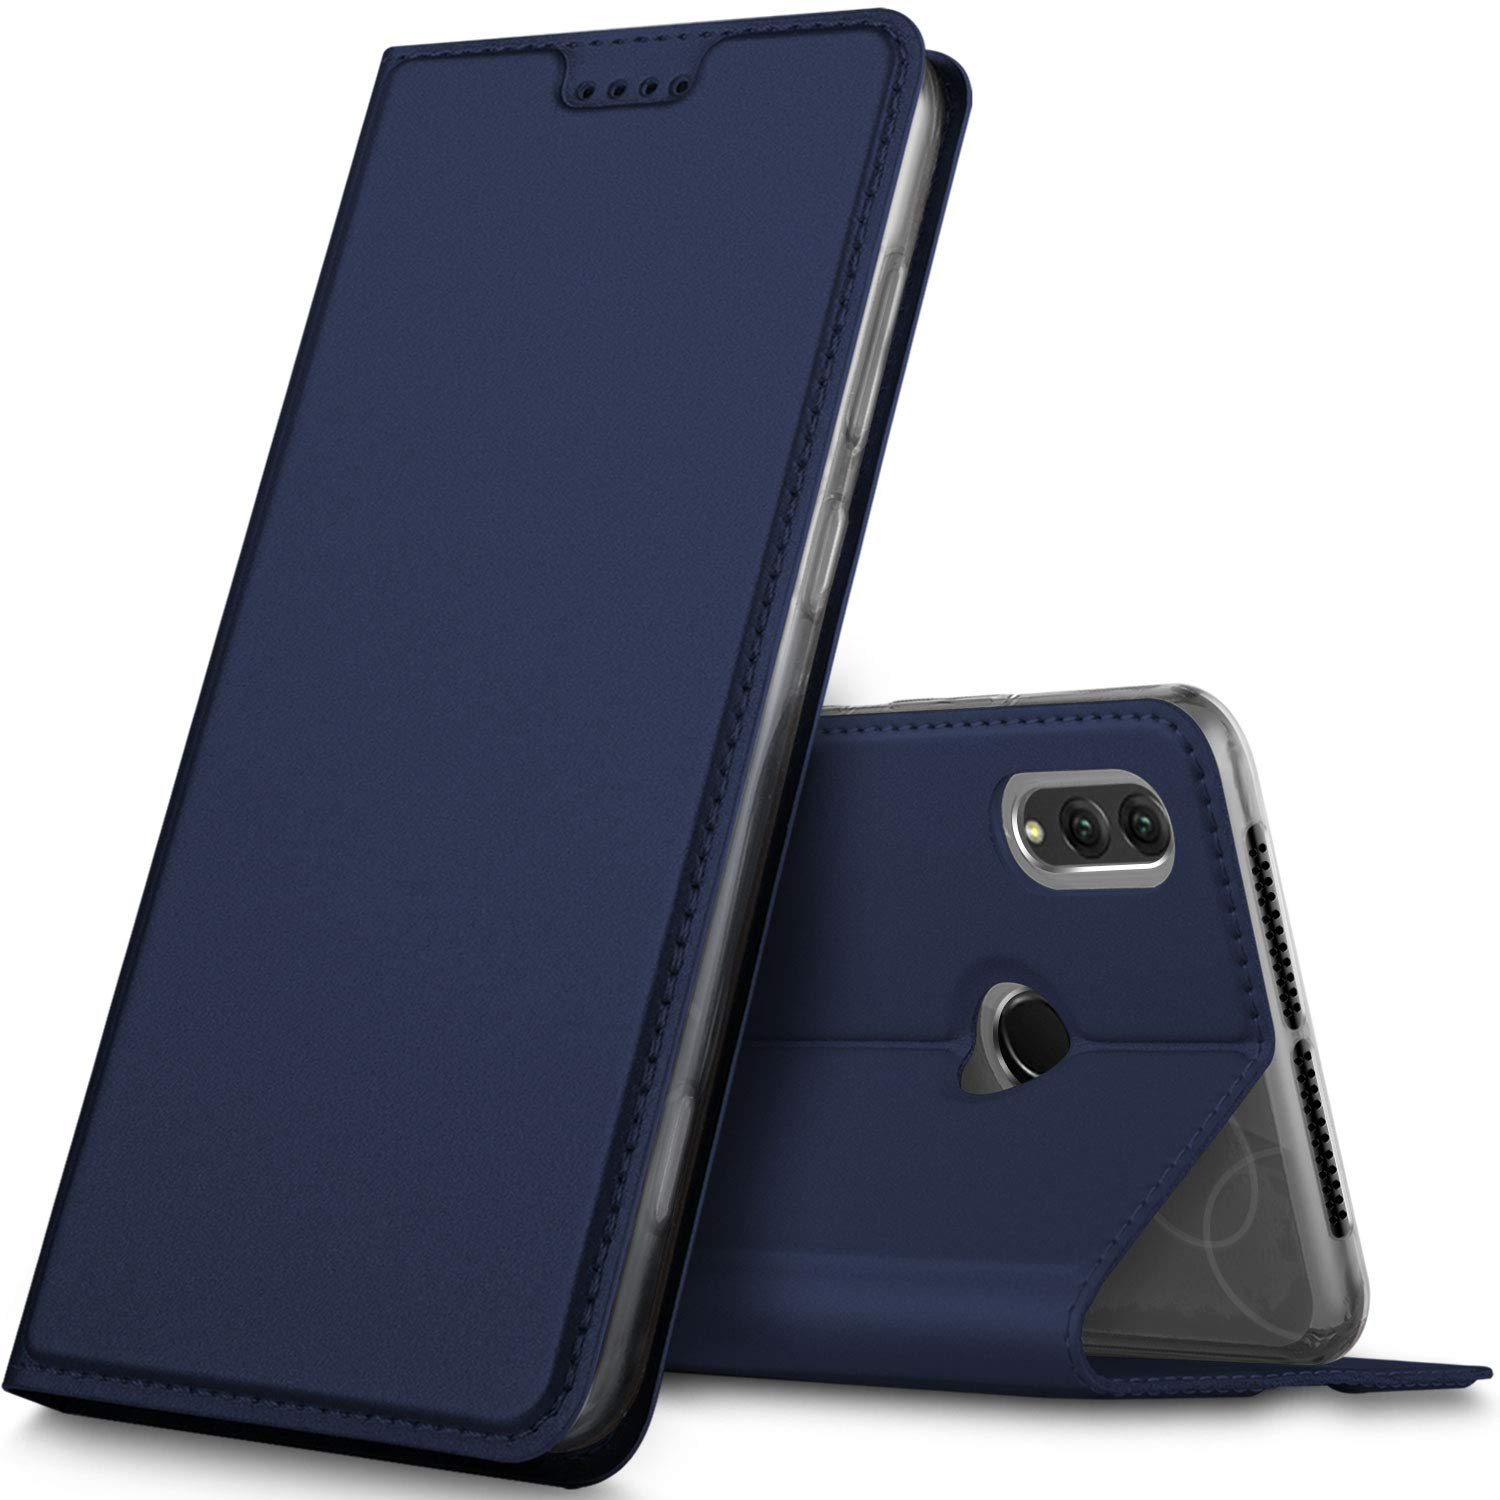 Honor Note 10 case, KuGi Huawei Honor Note 10 case, Ultra-Thin DD Style PU Cover + TPU Back Stand Case for Huawei Honor Note 10 Smartphone(Navy)